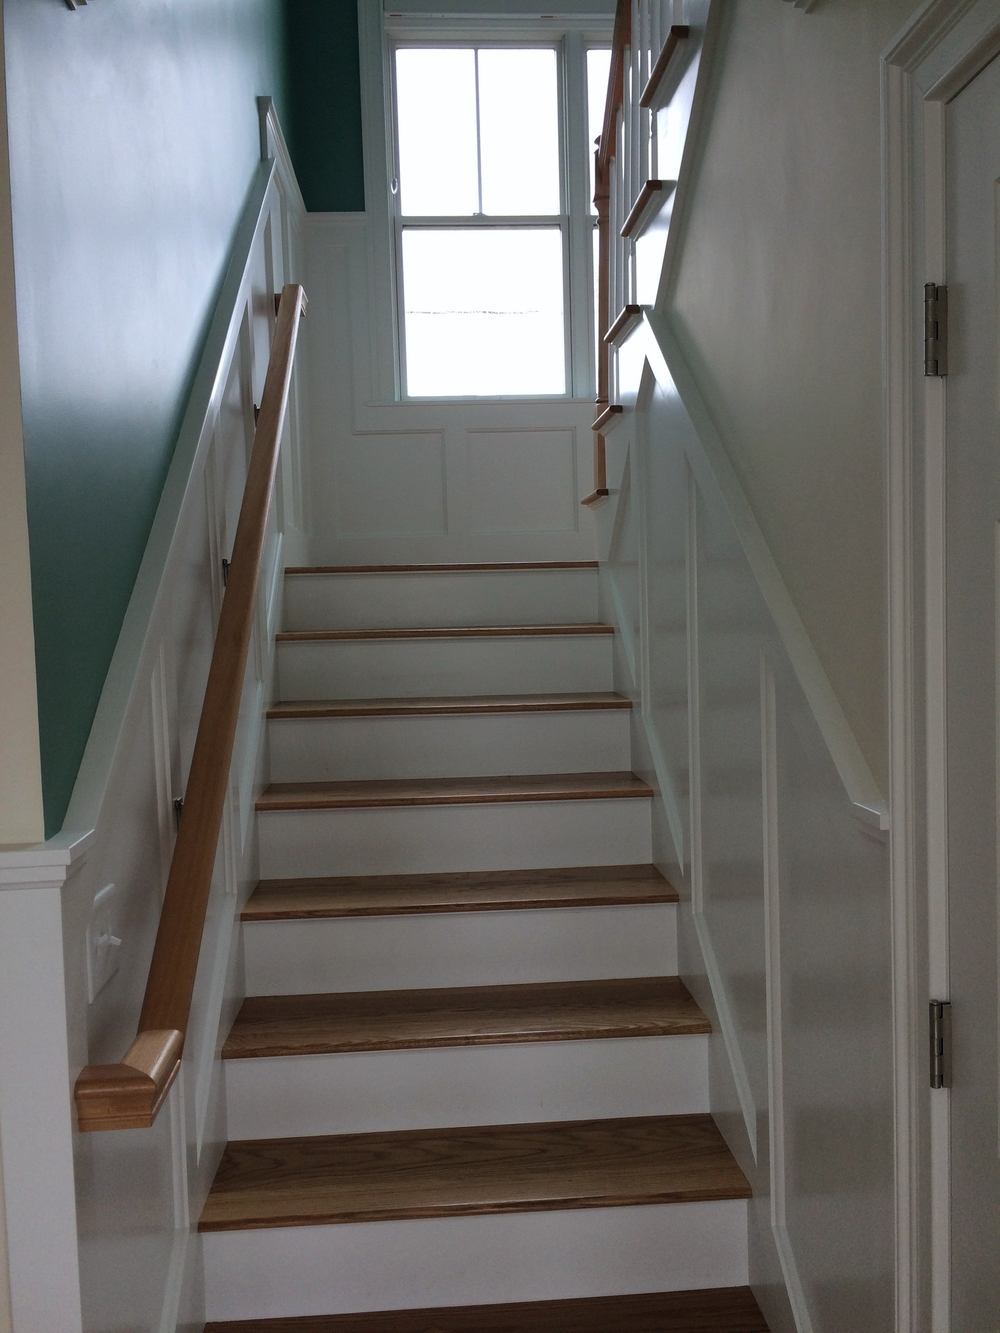 P-L Stairs Going Up 712015.jpg